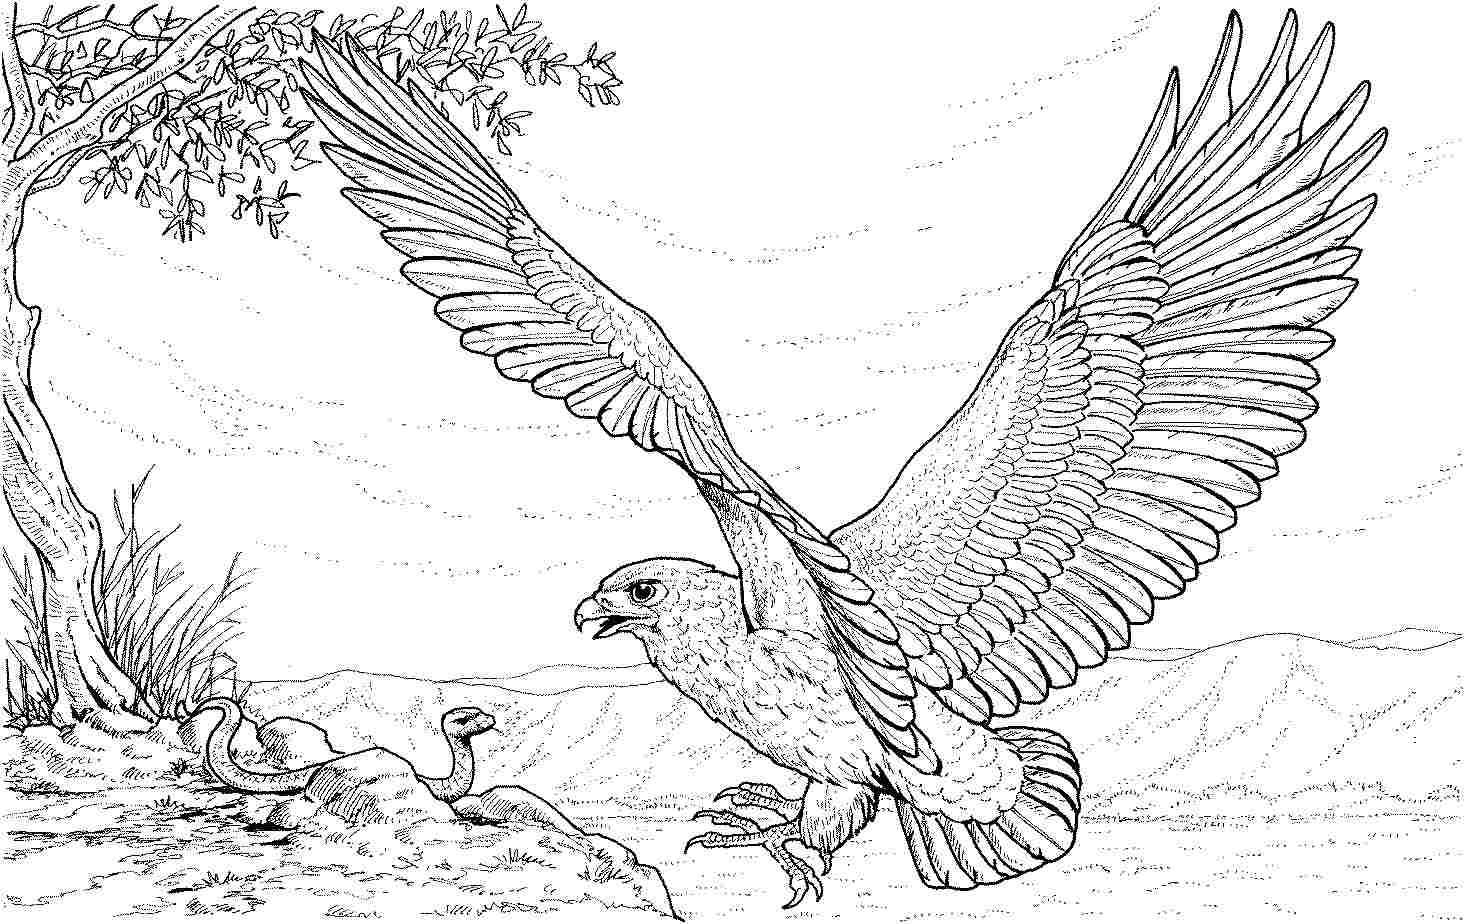 eagle coloring book eagle coloring pages to download and print for free book coloring eagle 1 1